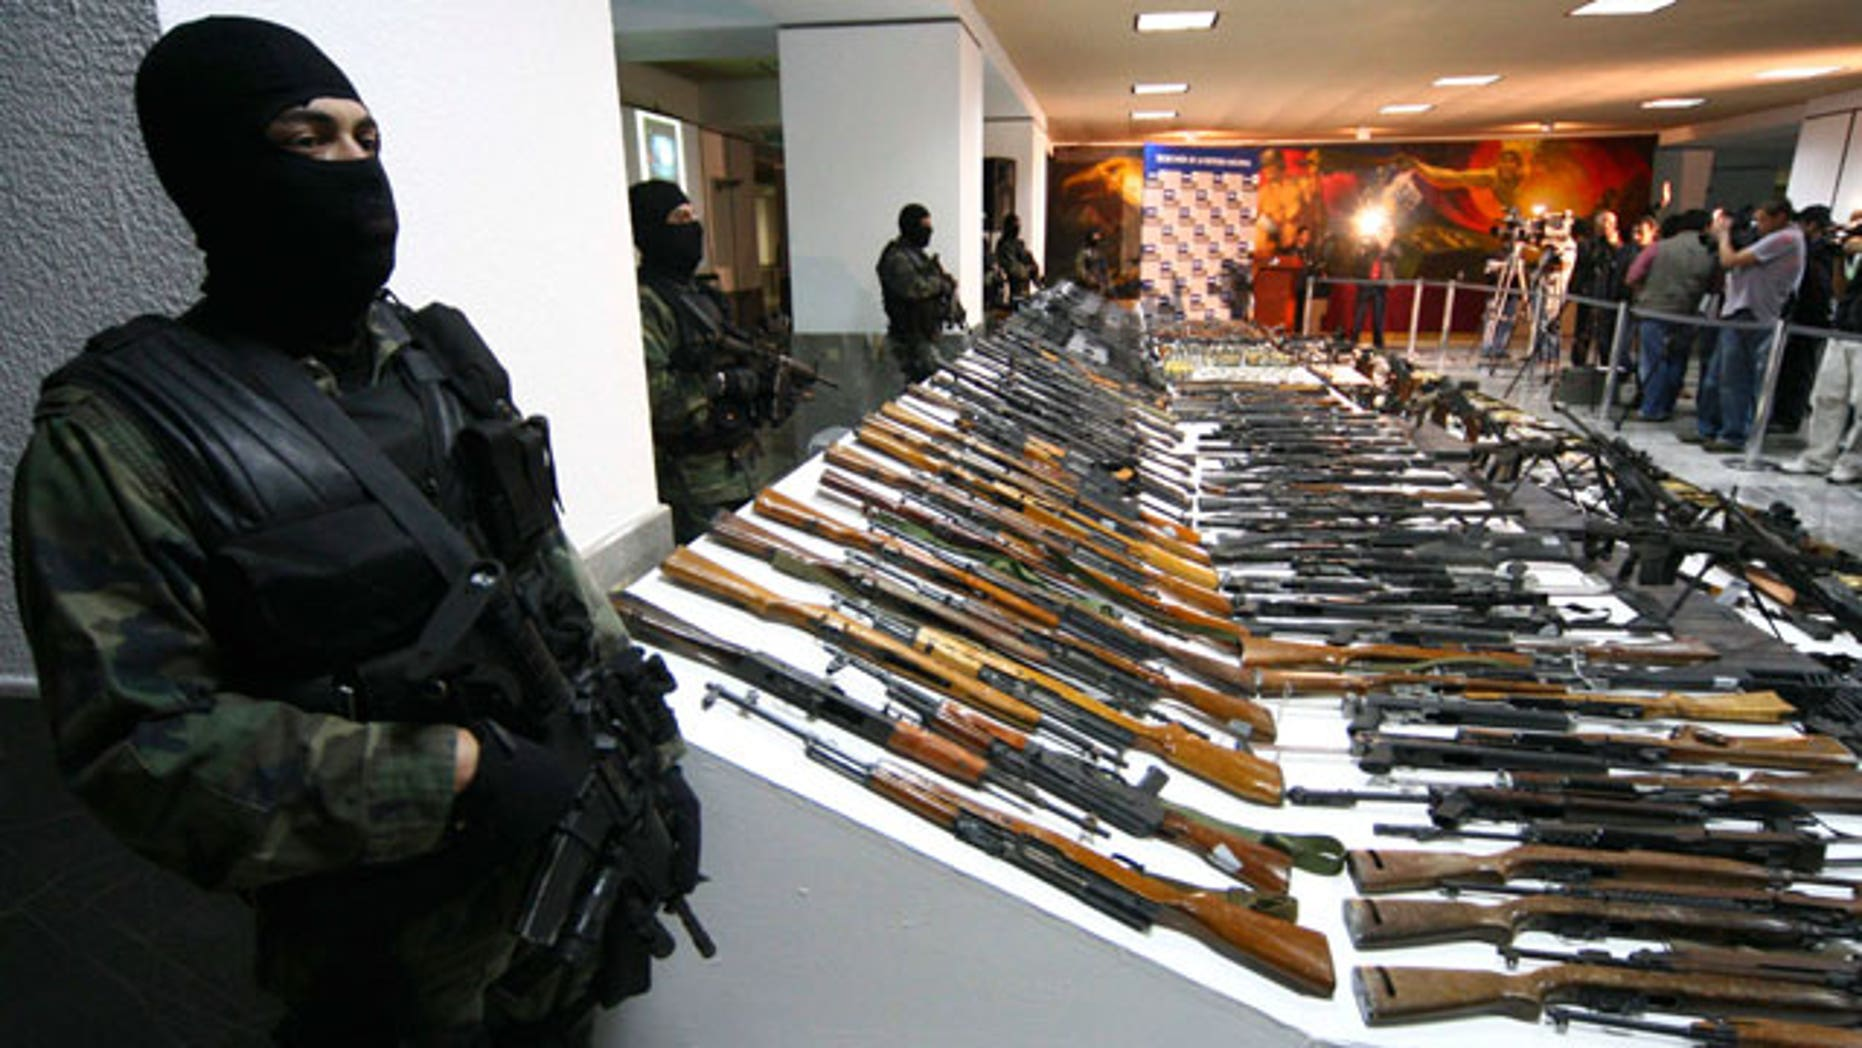 FILE: Soldiers stand guard near seized weapons during a news conference at the Defense Headquarters in Mexico City.